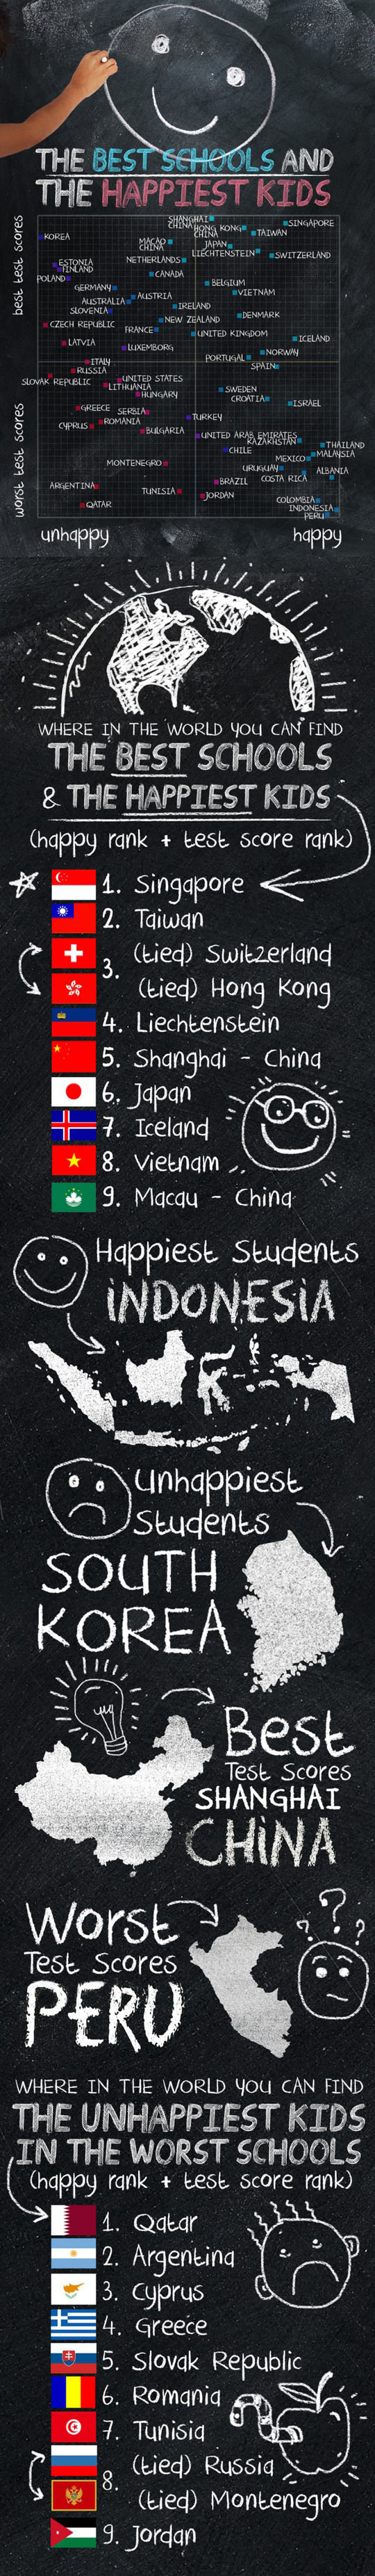 Where in the world you can find the best schools and the happiest kids…